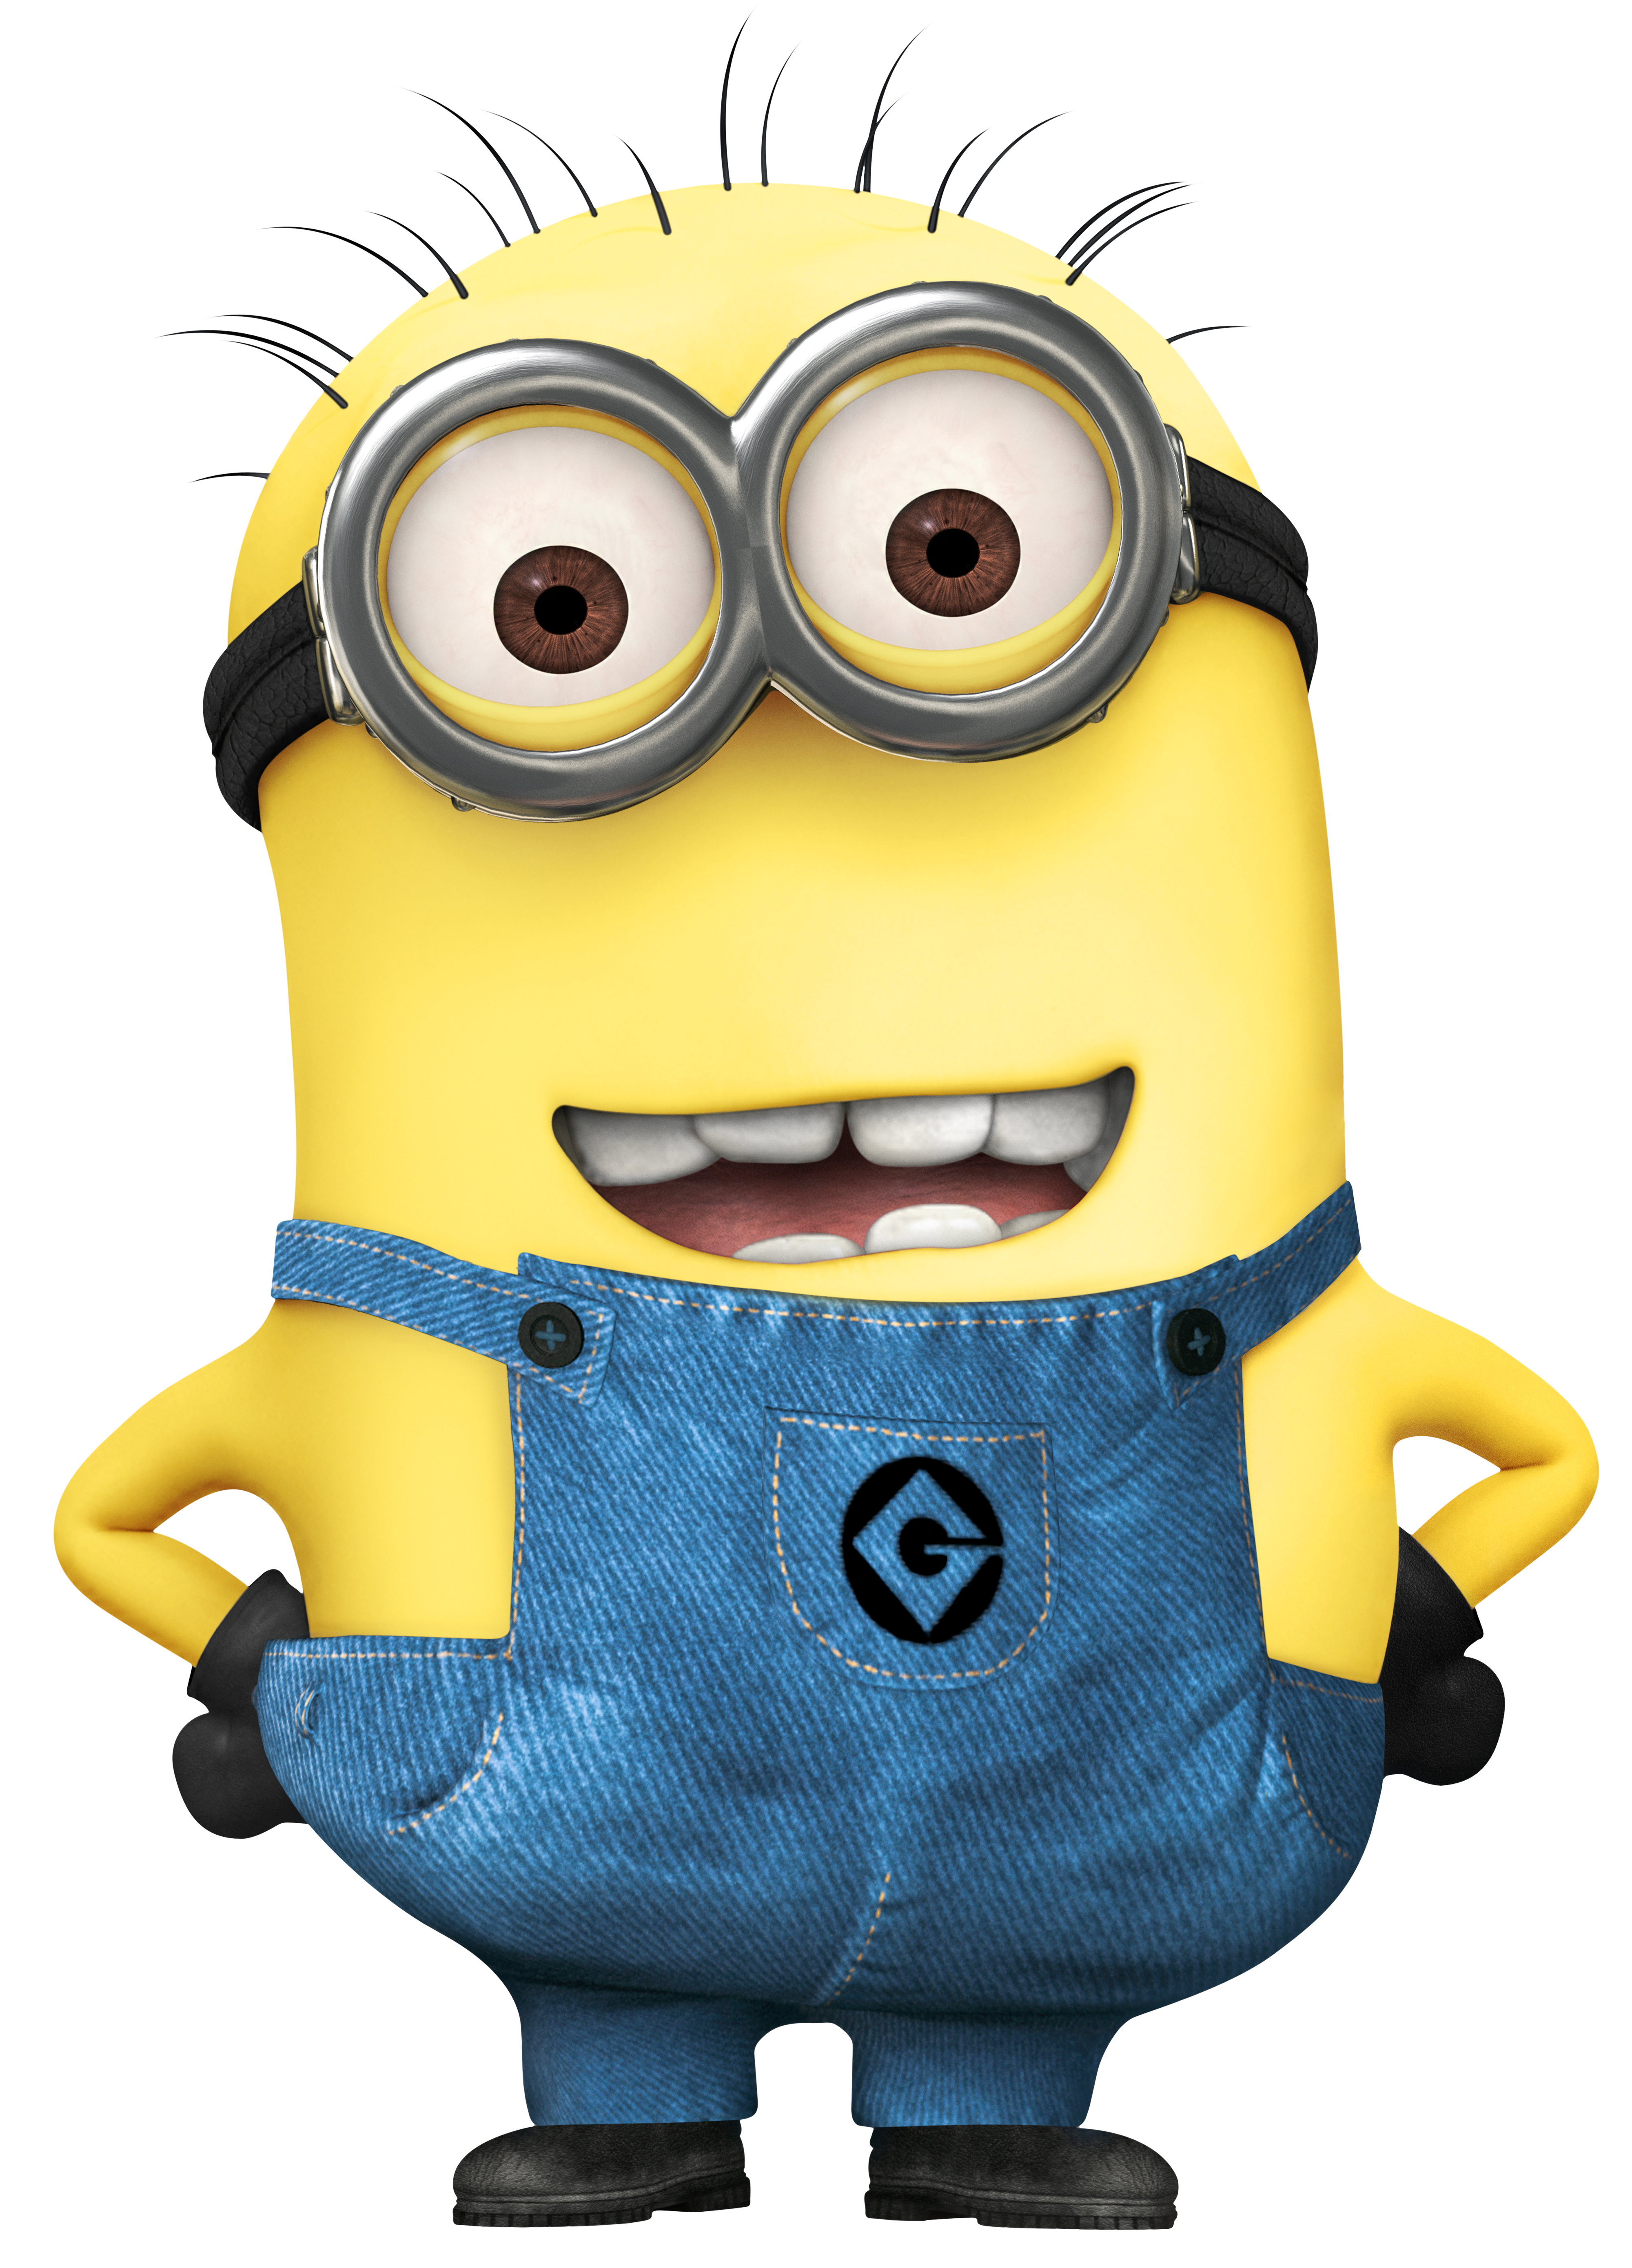 Minion png images. Extra large transparent image